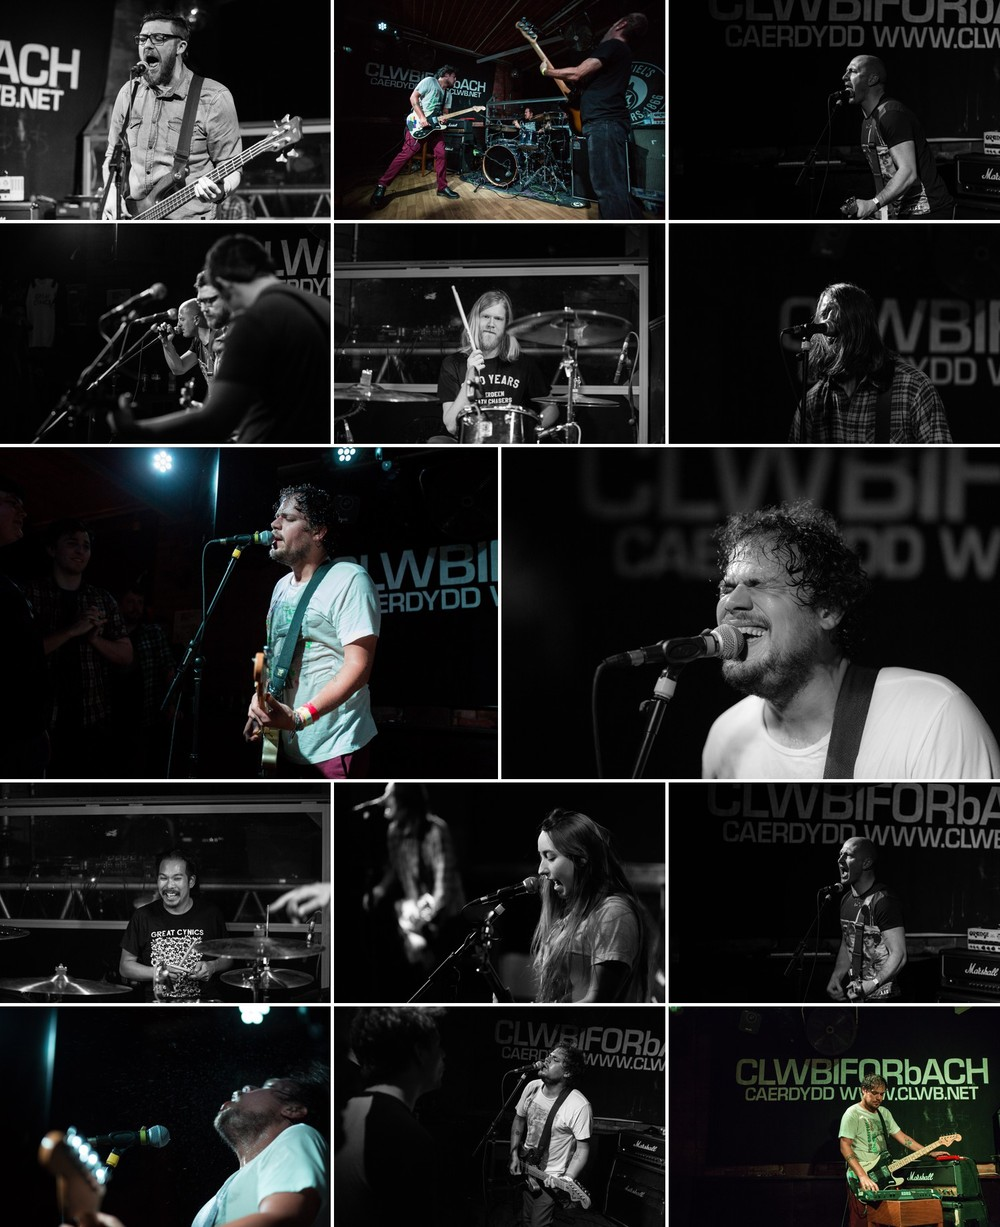 Jeff Rosenstock with Great Cynics and Vega Bodegas march 31st 2016 Clwb Ifor Bach